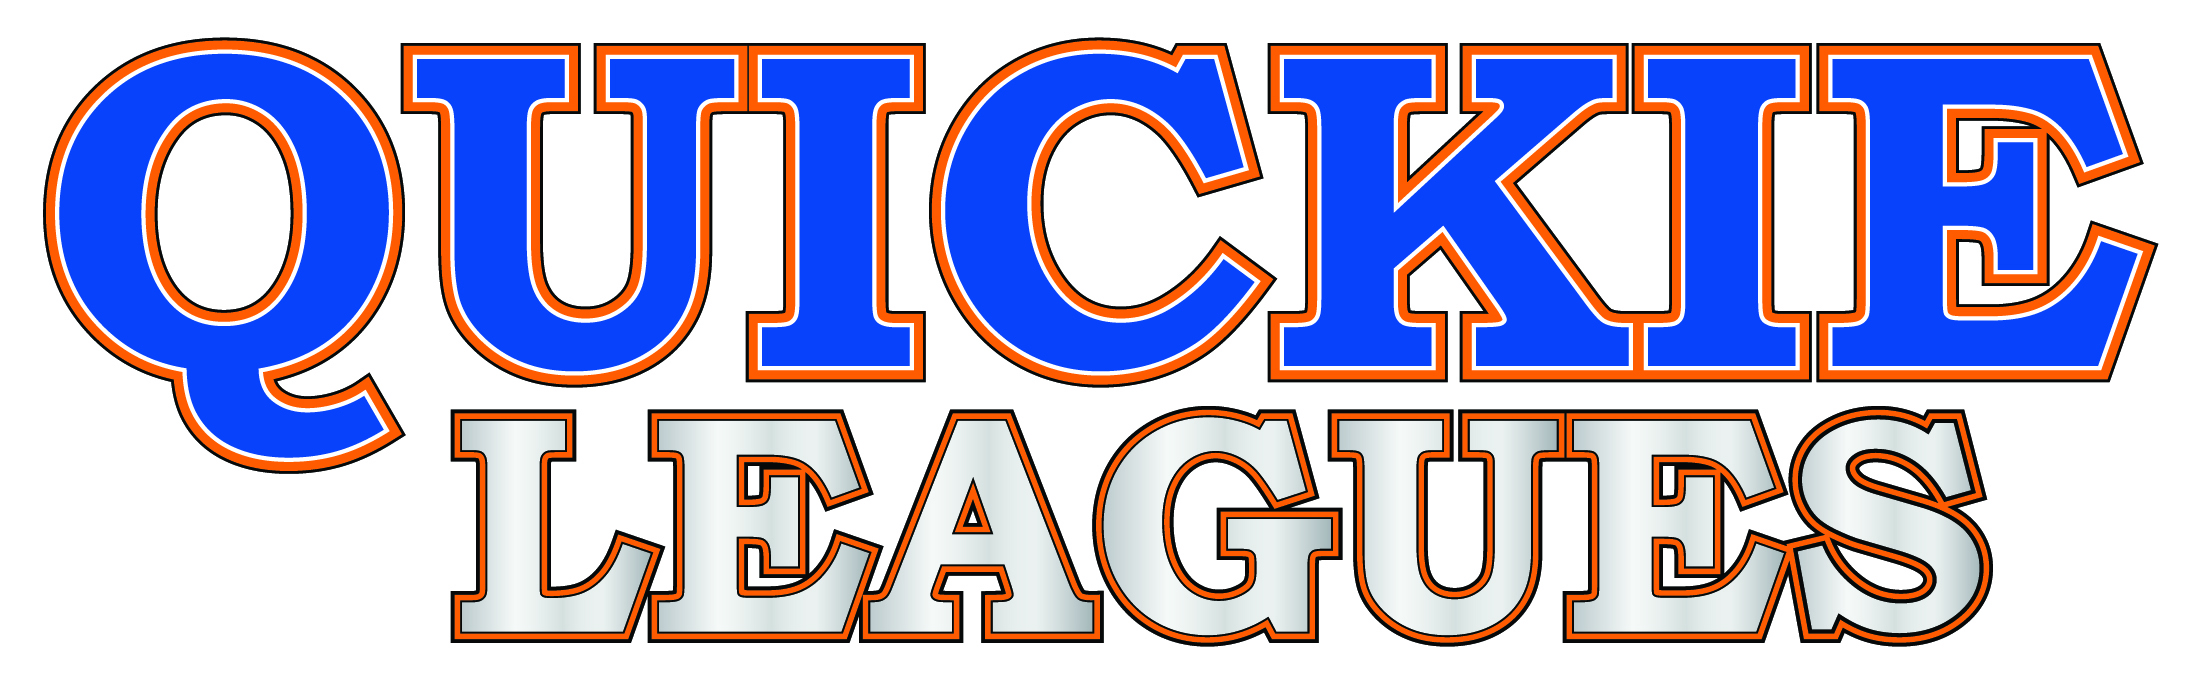 Quickie Leagues!